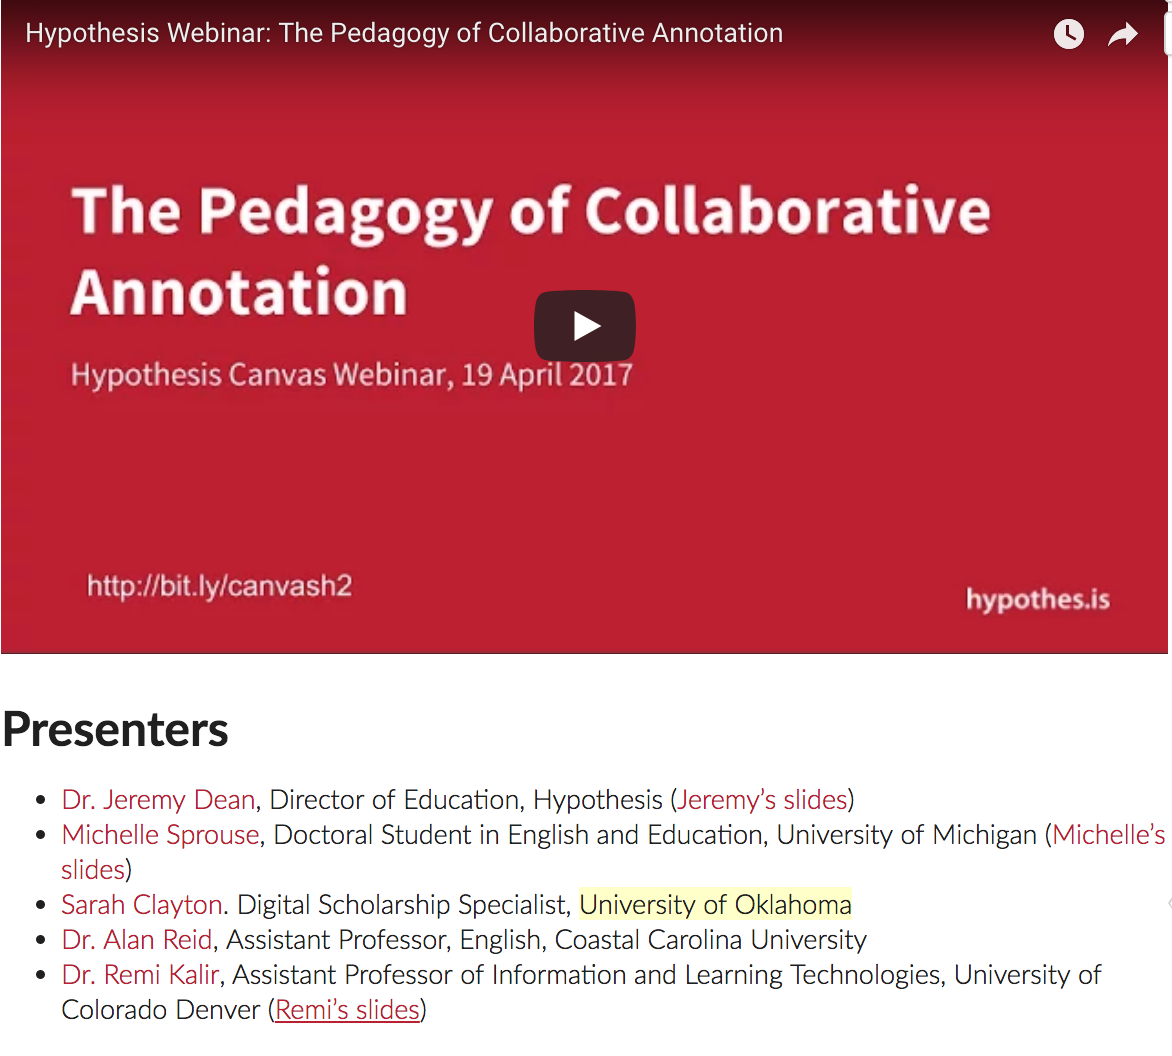 The pedagogy of collaborative annotation | Hypothesis Webinar